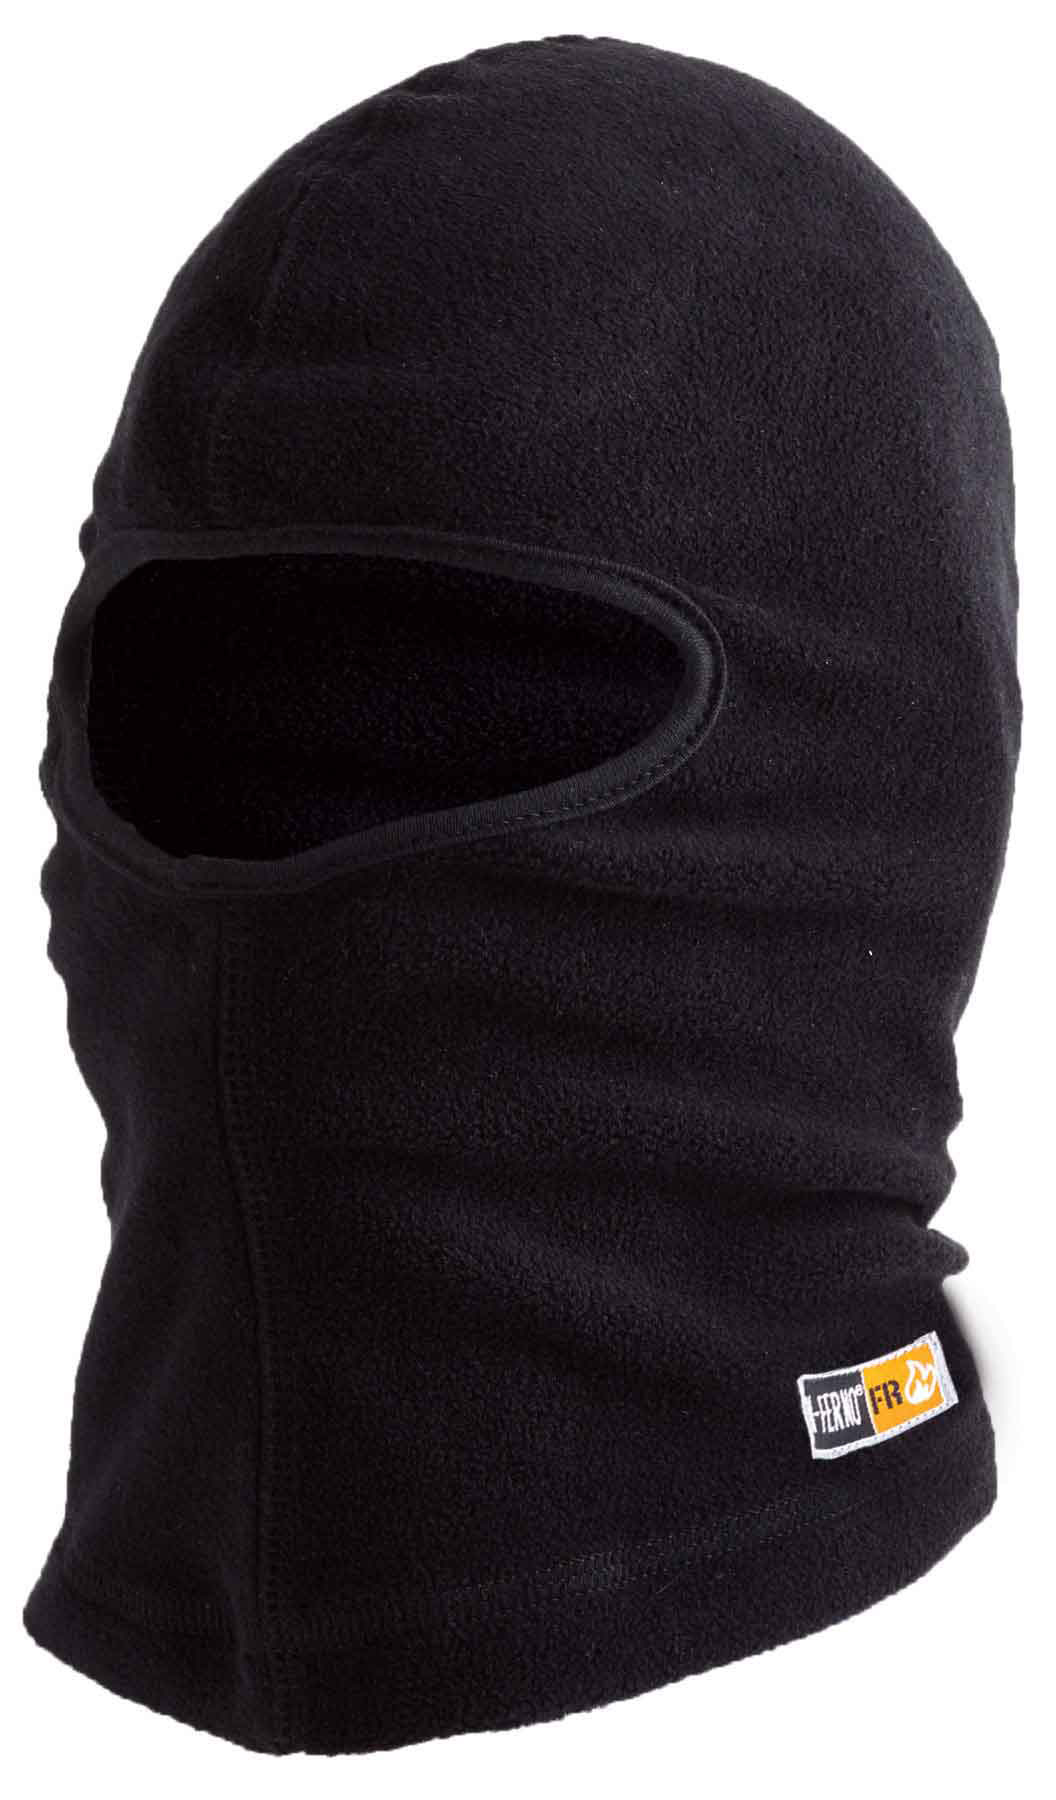 Ergodyne 6828FR N-Ferno Modacrylic Blend FR Fleece Balaclava from GME Supply